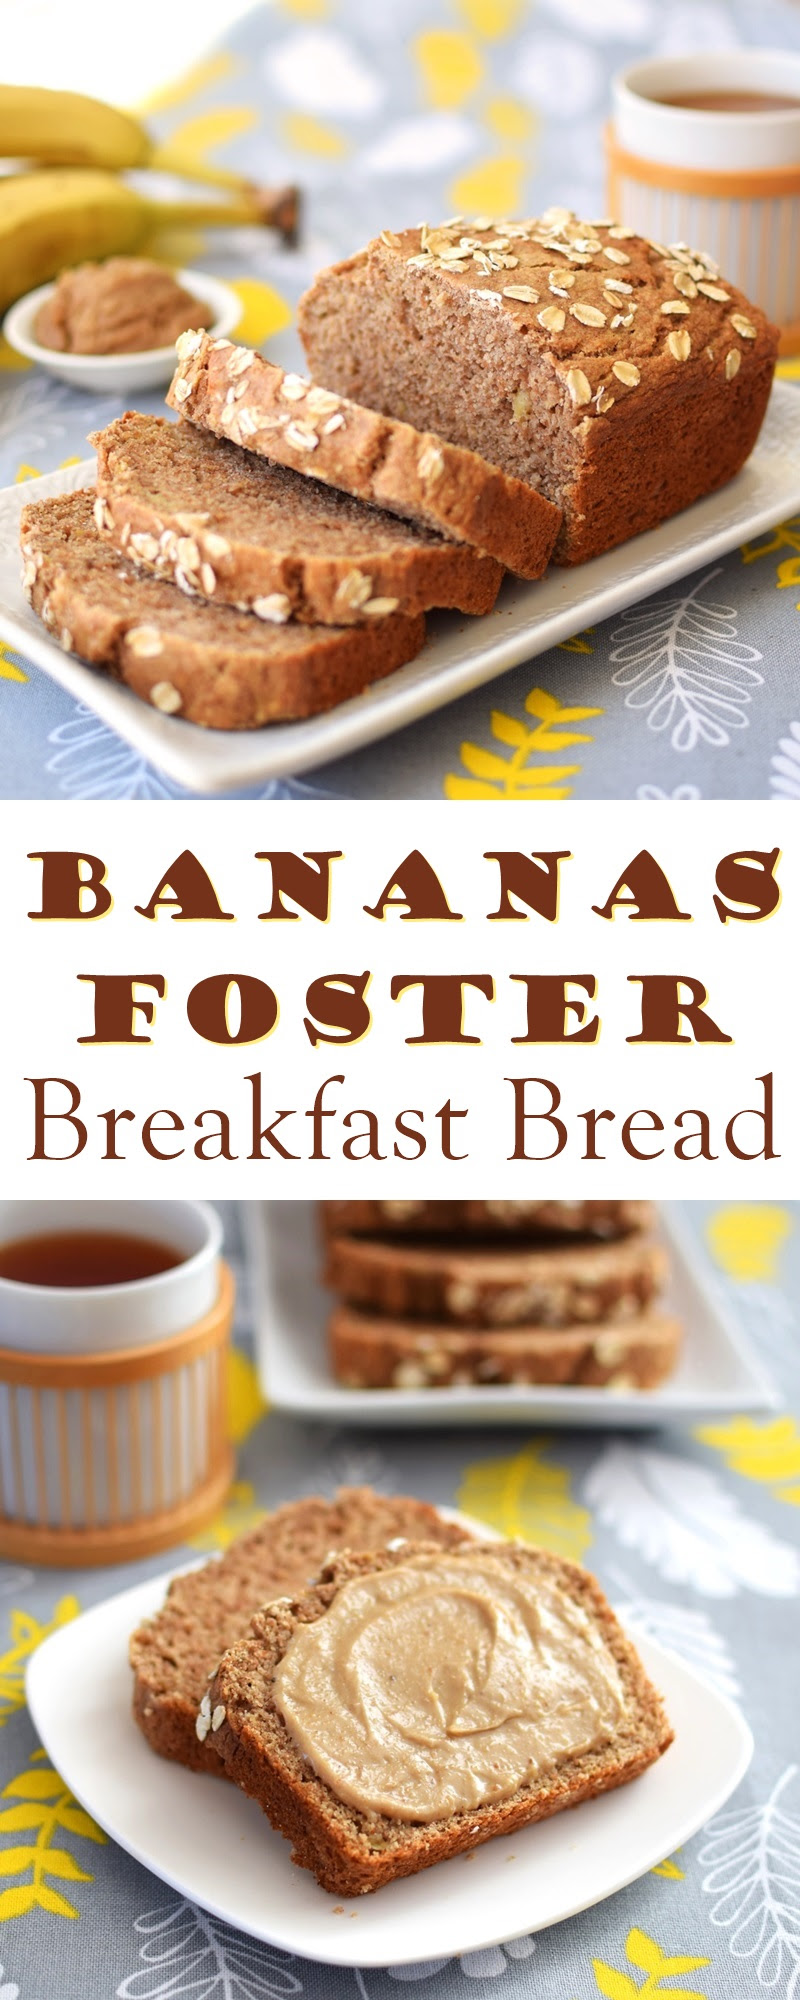 Bananas Foster Breakfast Bread Recipe with Vanilla Cream ...